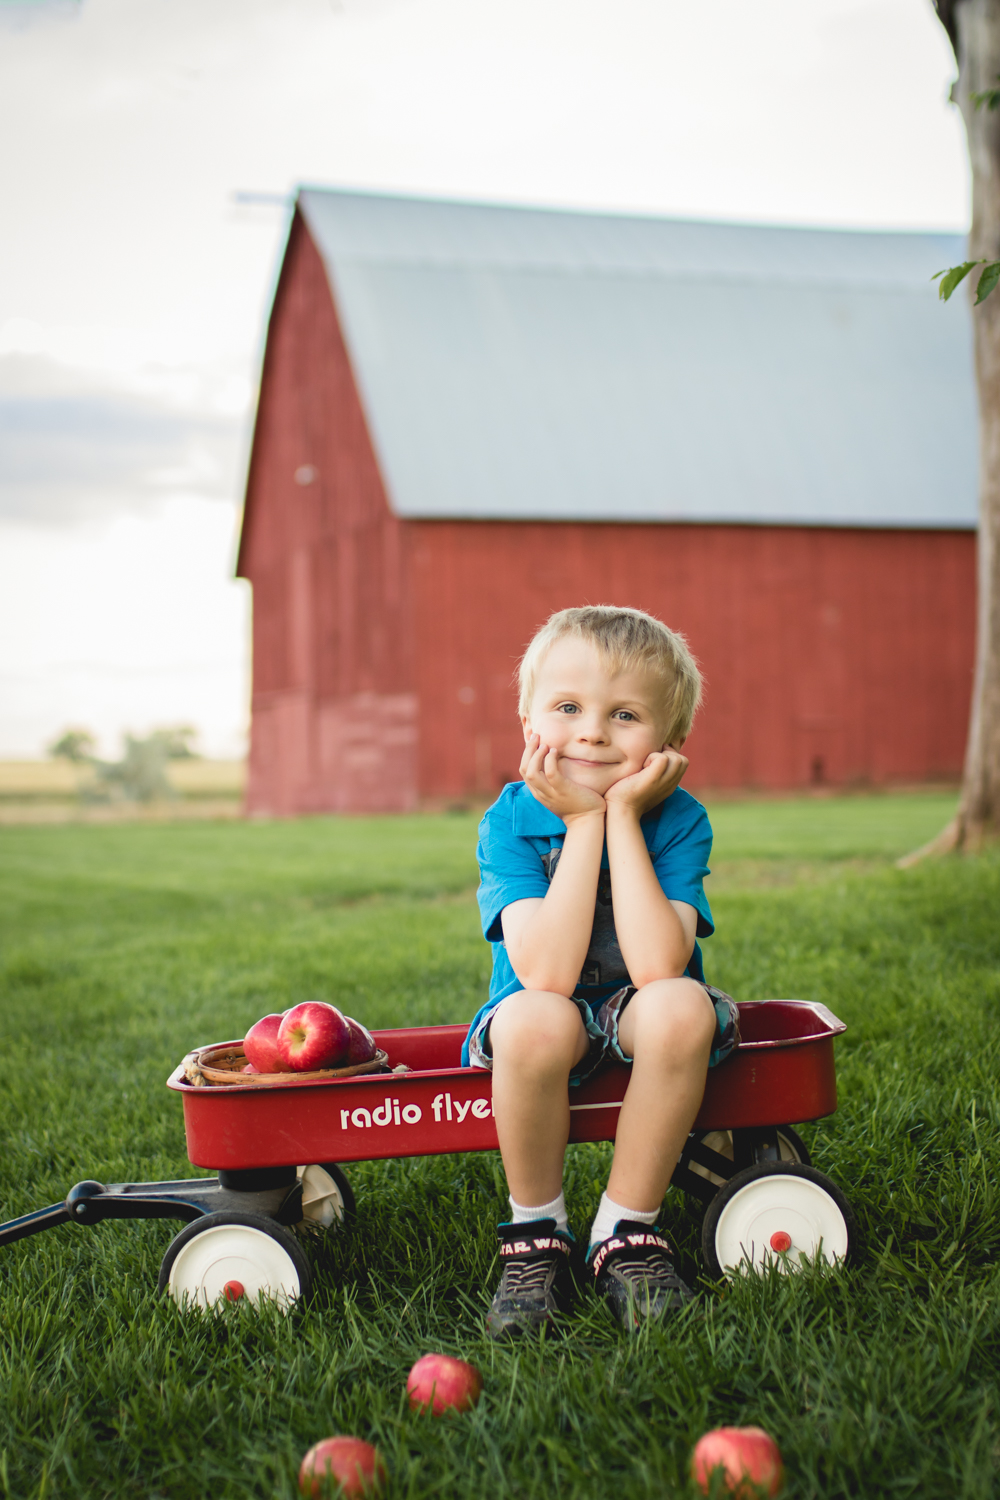 Boy sitting in a red wagon with a basket of apples in front of a red barn in Fort Collins